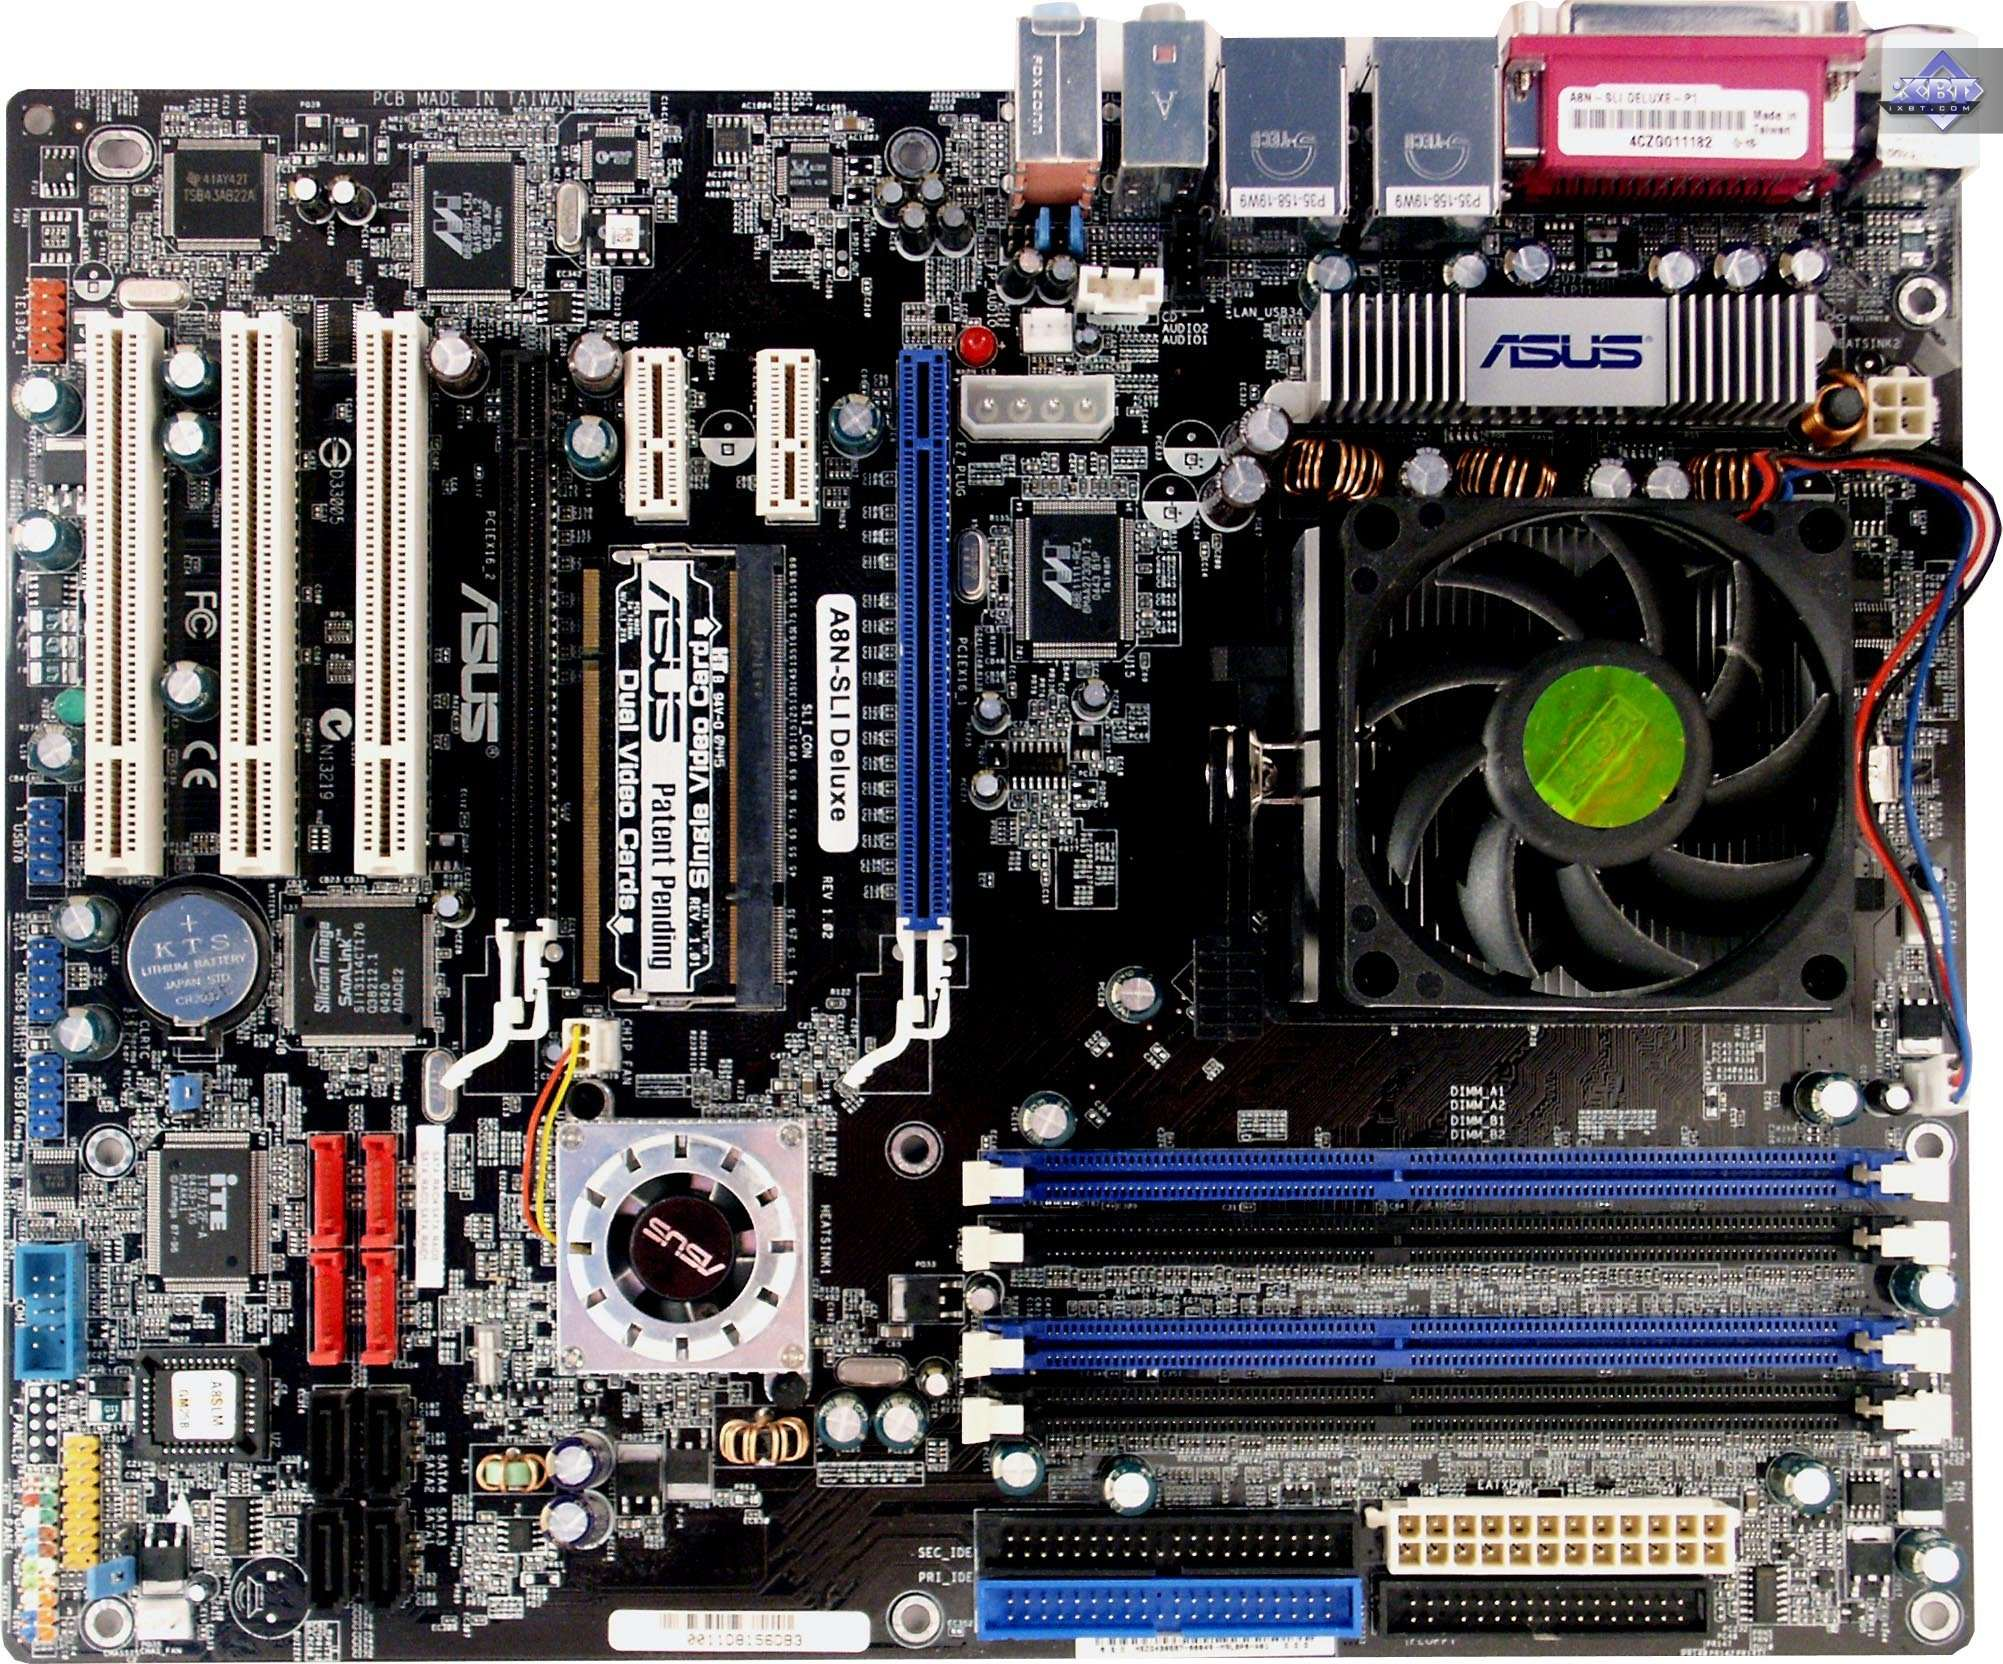 ASUS A8N-SLI DELUXE DRIVER DOWNLOAD